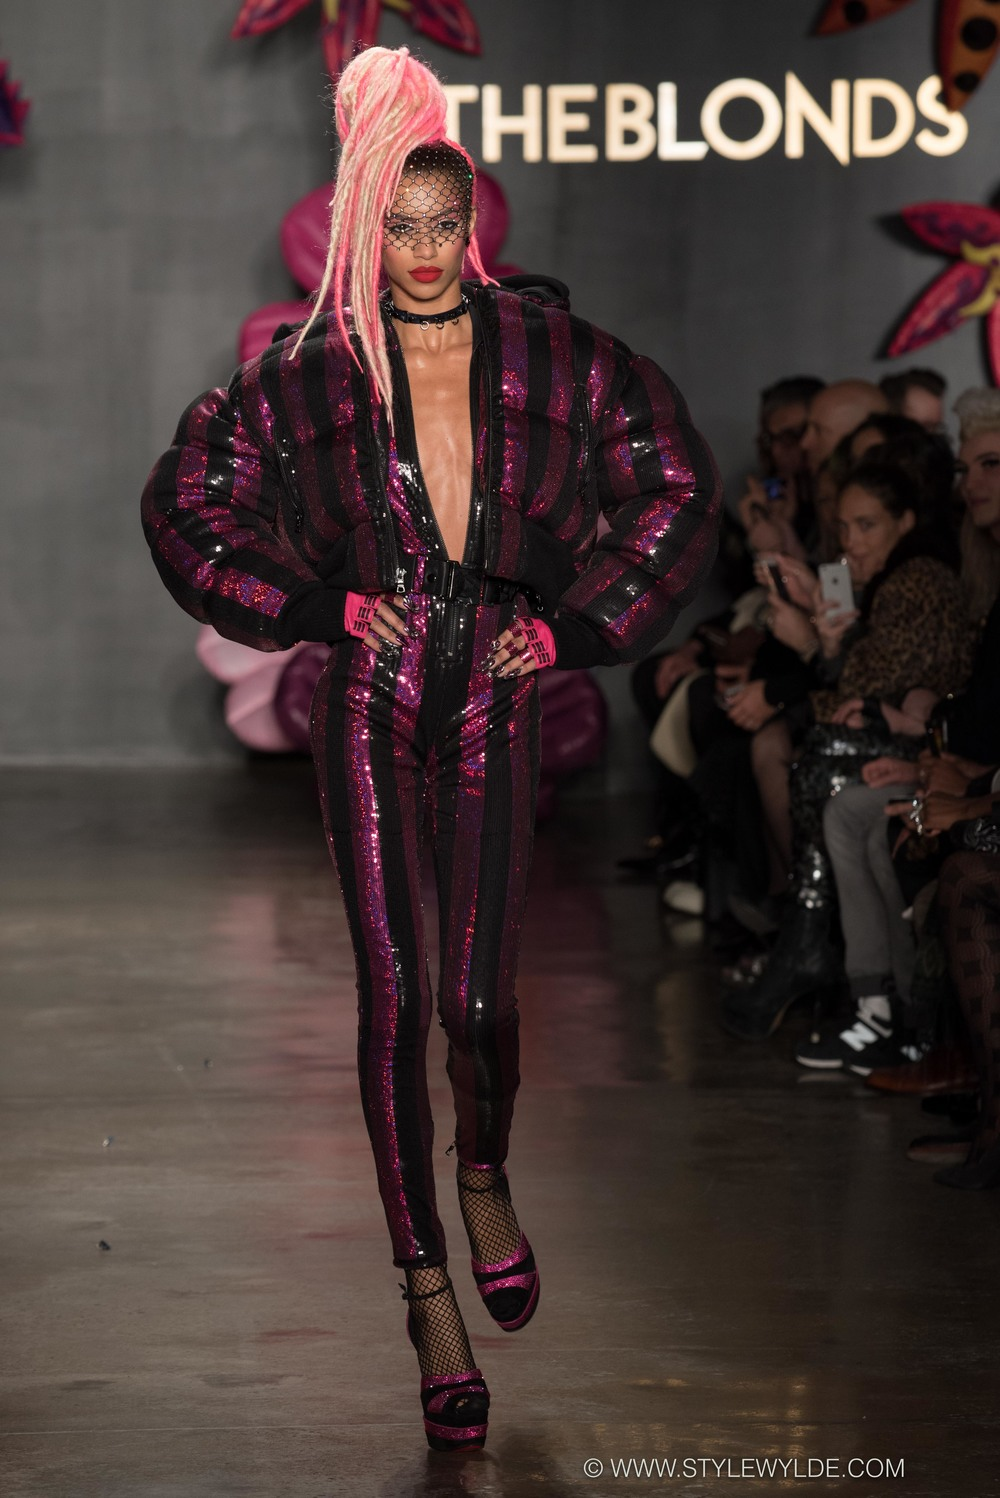 StyleWylde - The blonds- AW16-14.jpg